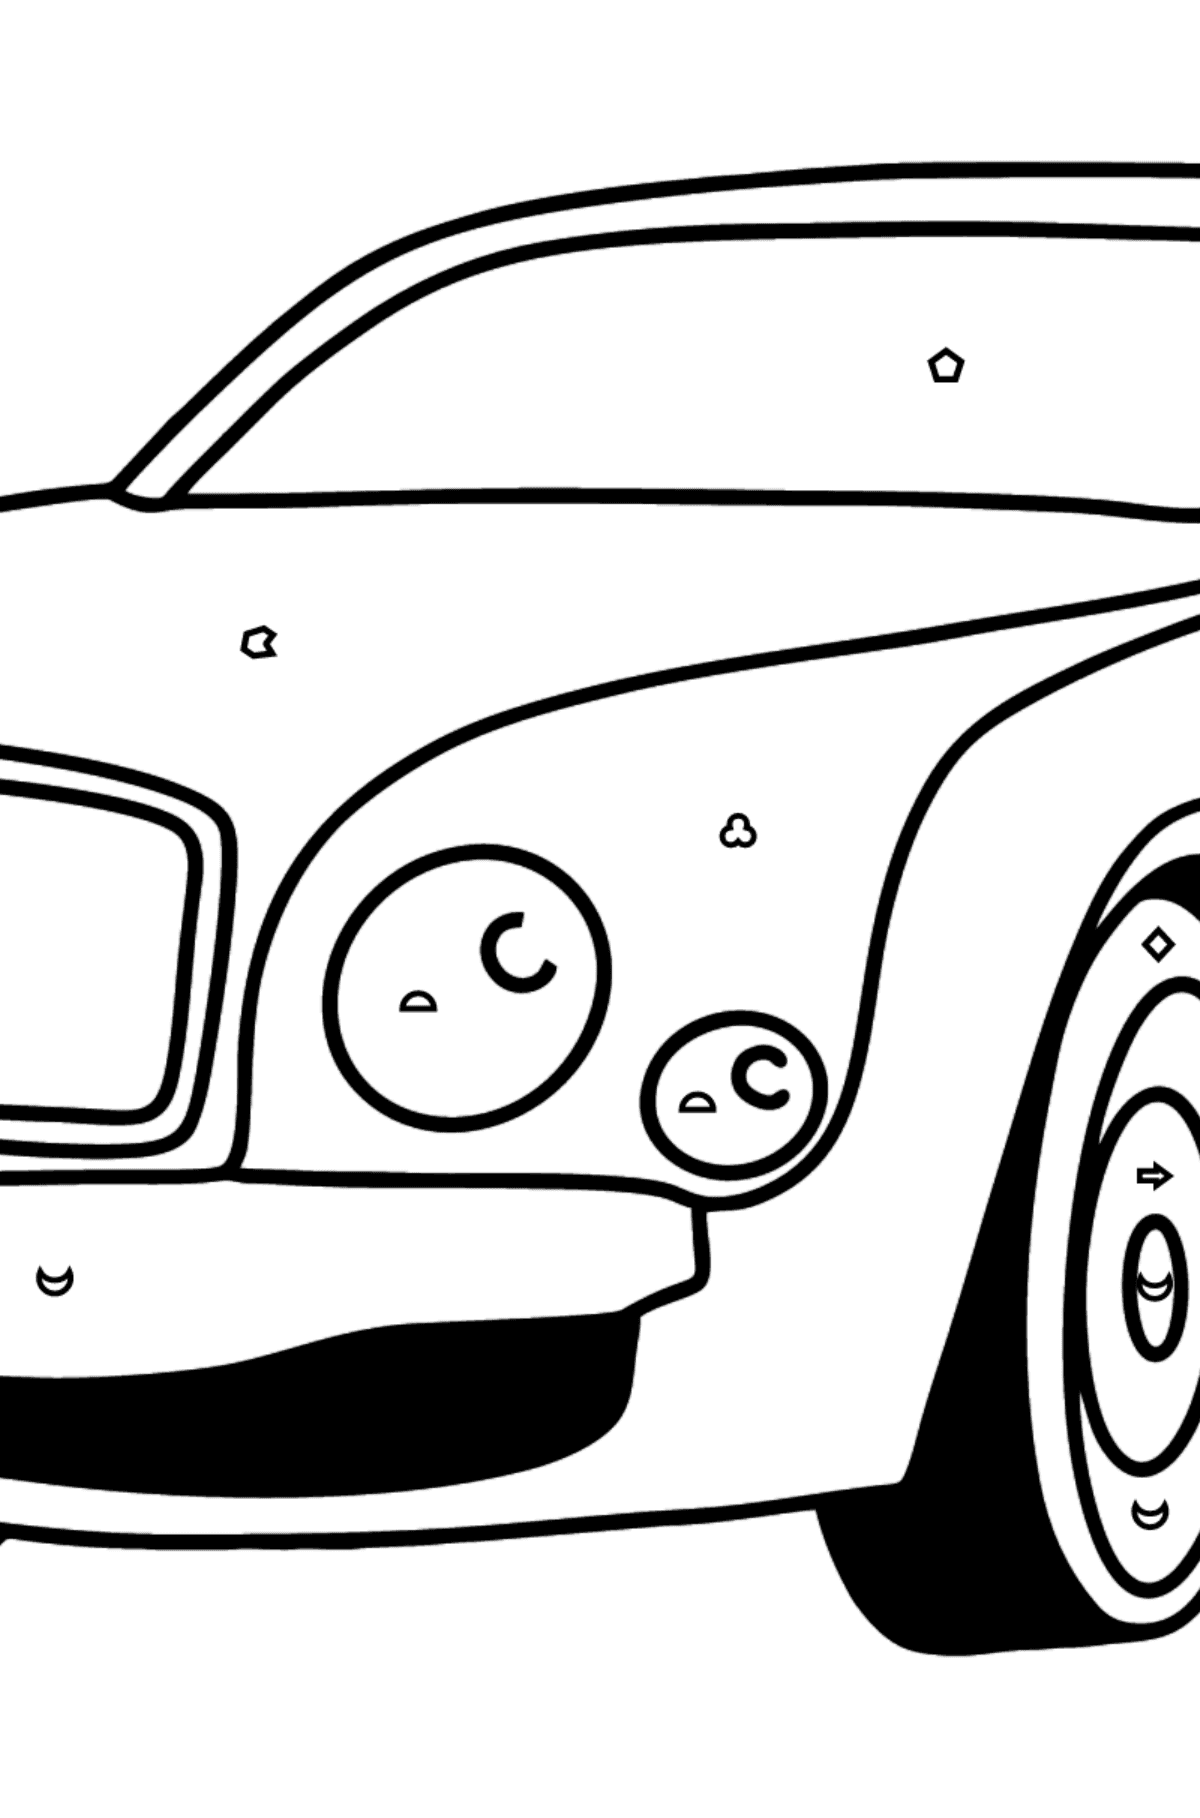 Bentley Mulsanne Car Coloring Page - Coloring by Geometric Shapes for Kids